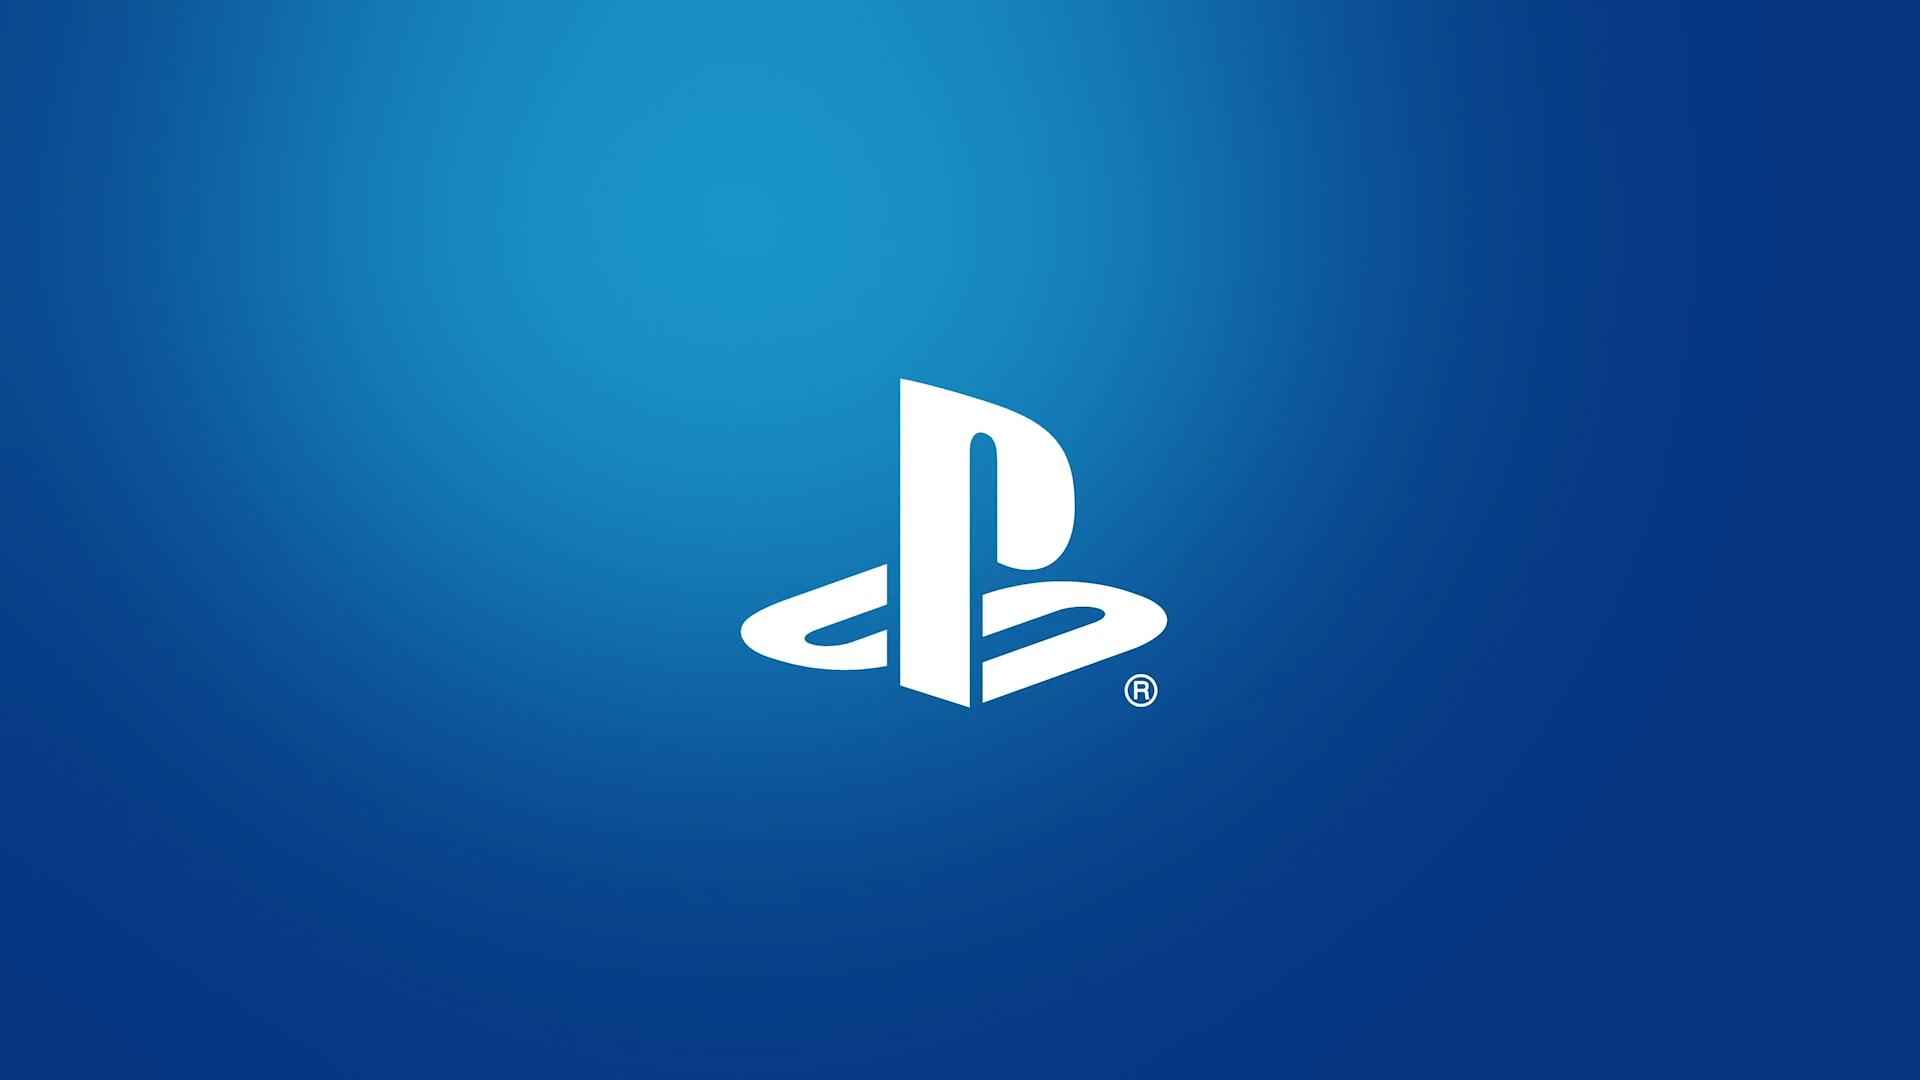 Watch the PlayStation E3 2018 press conference here